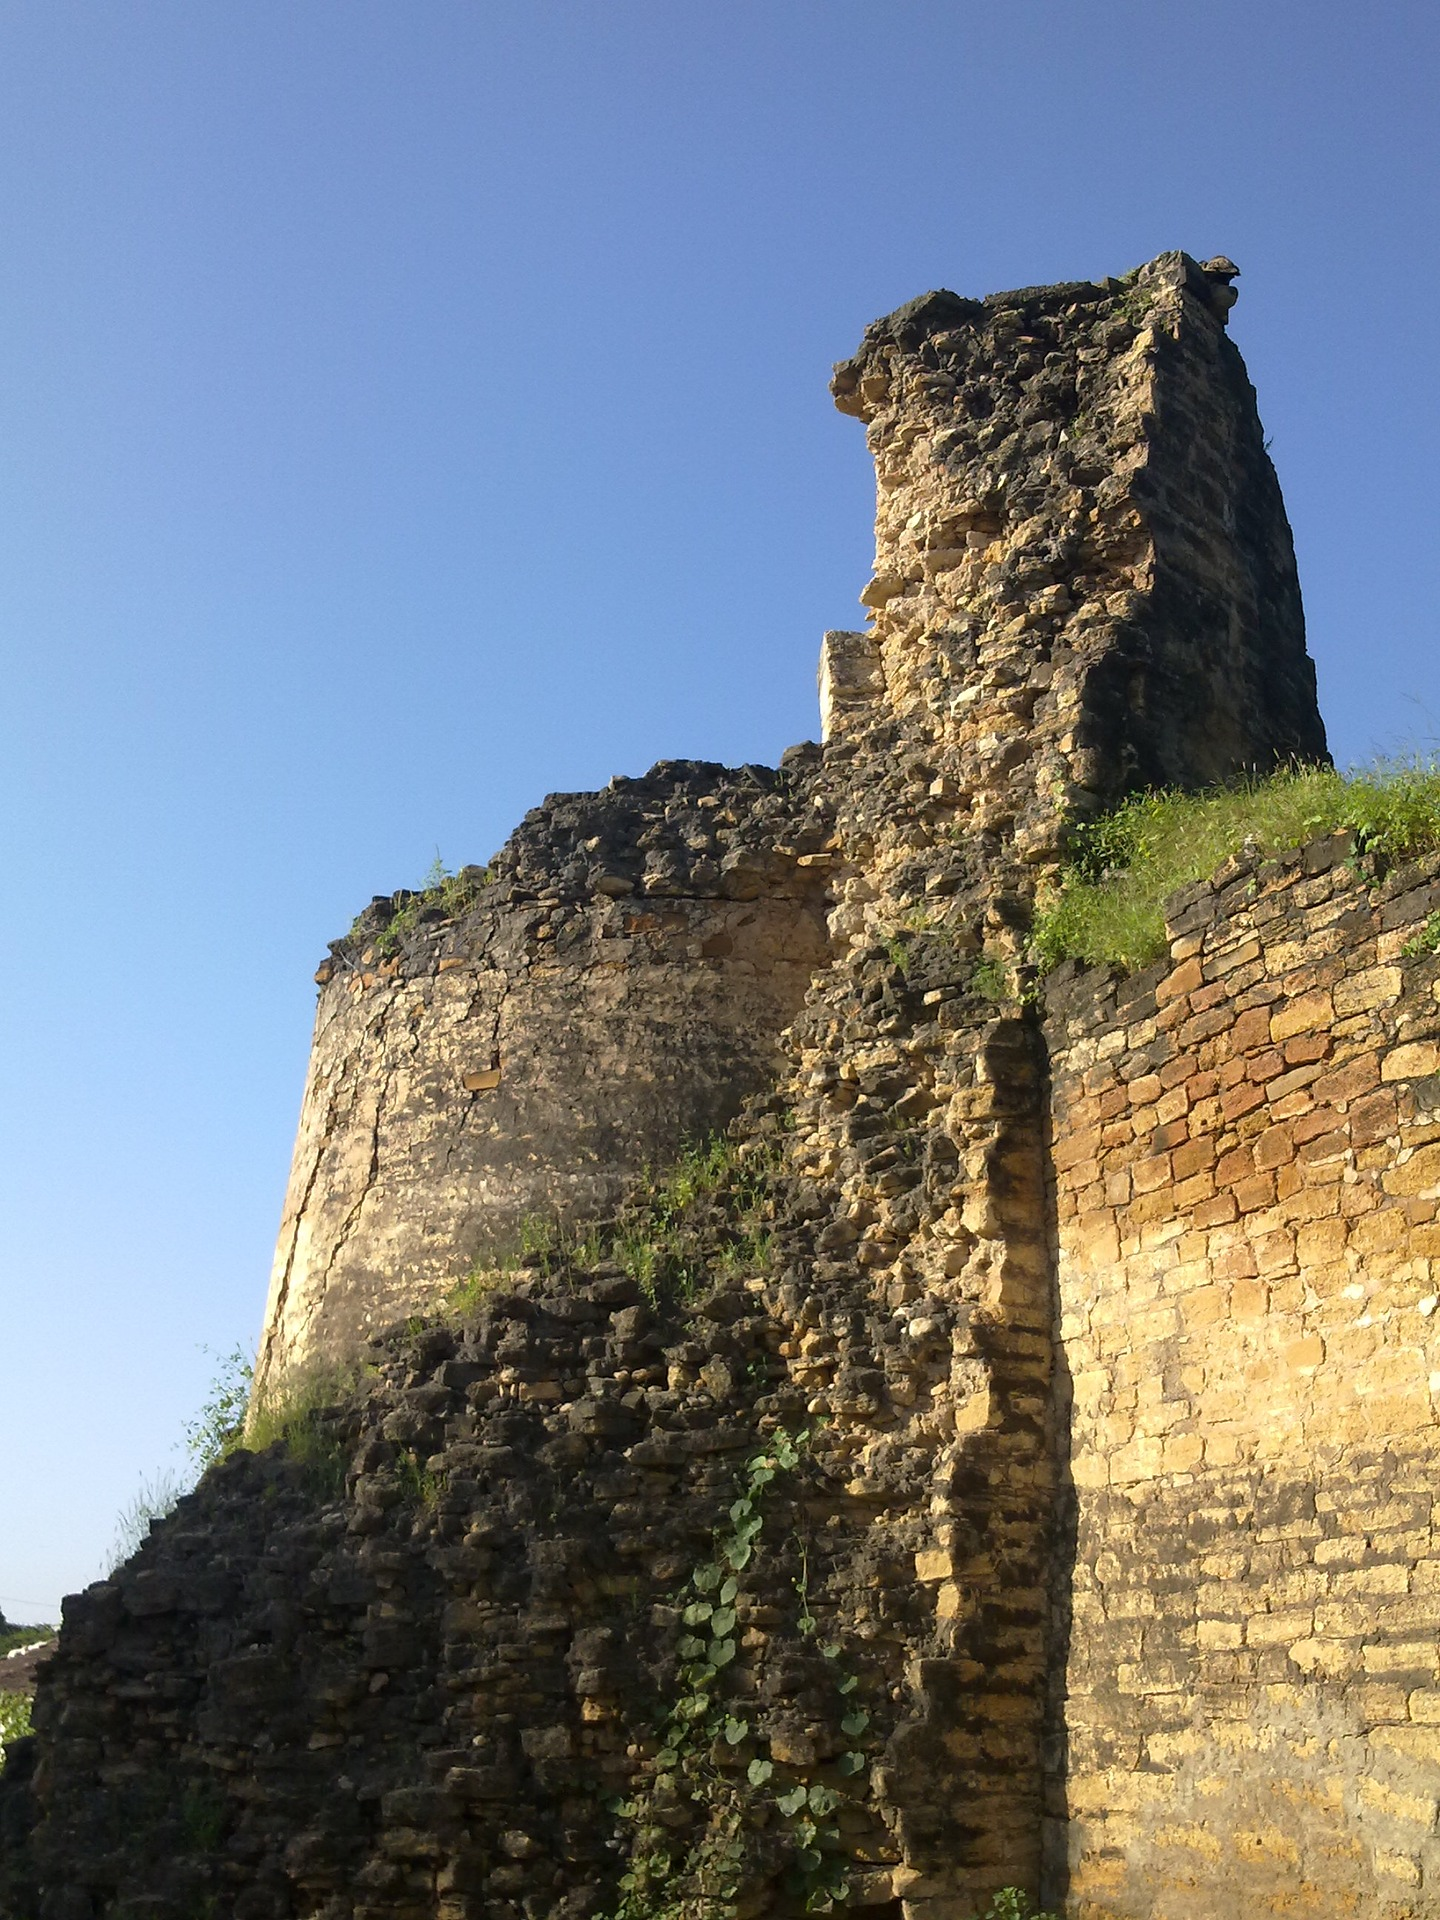 Place Can Visit In The Tera Village-Tera Fort